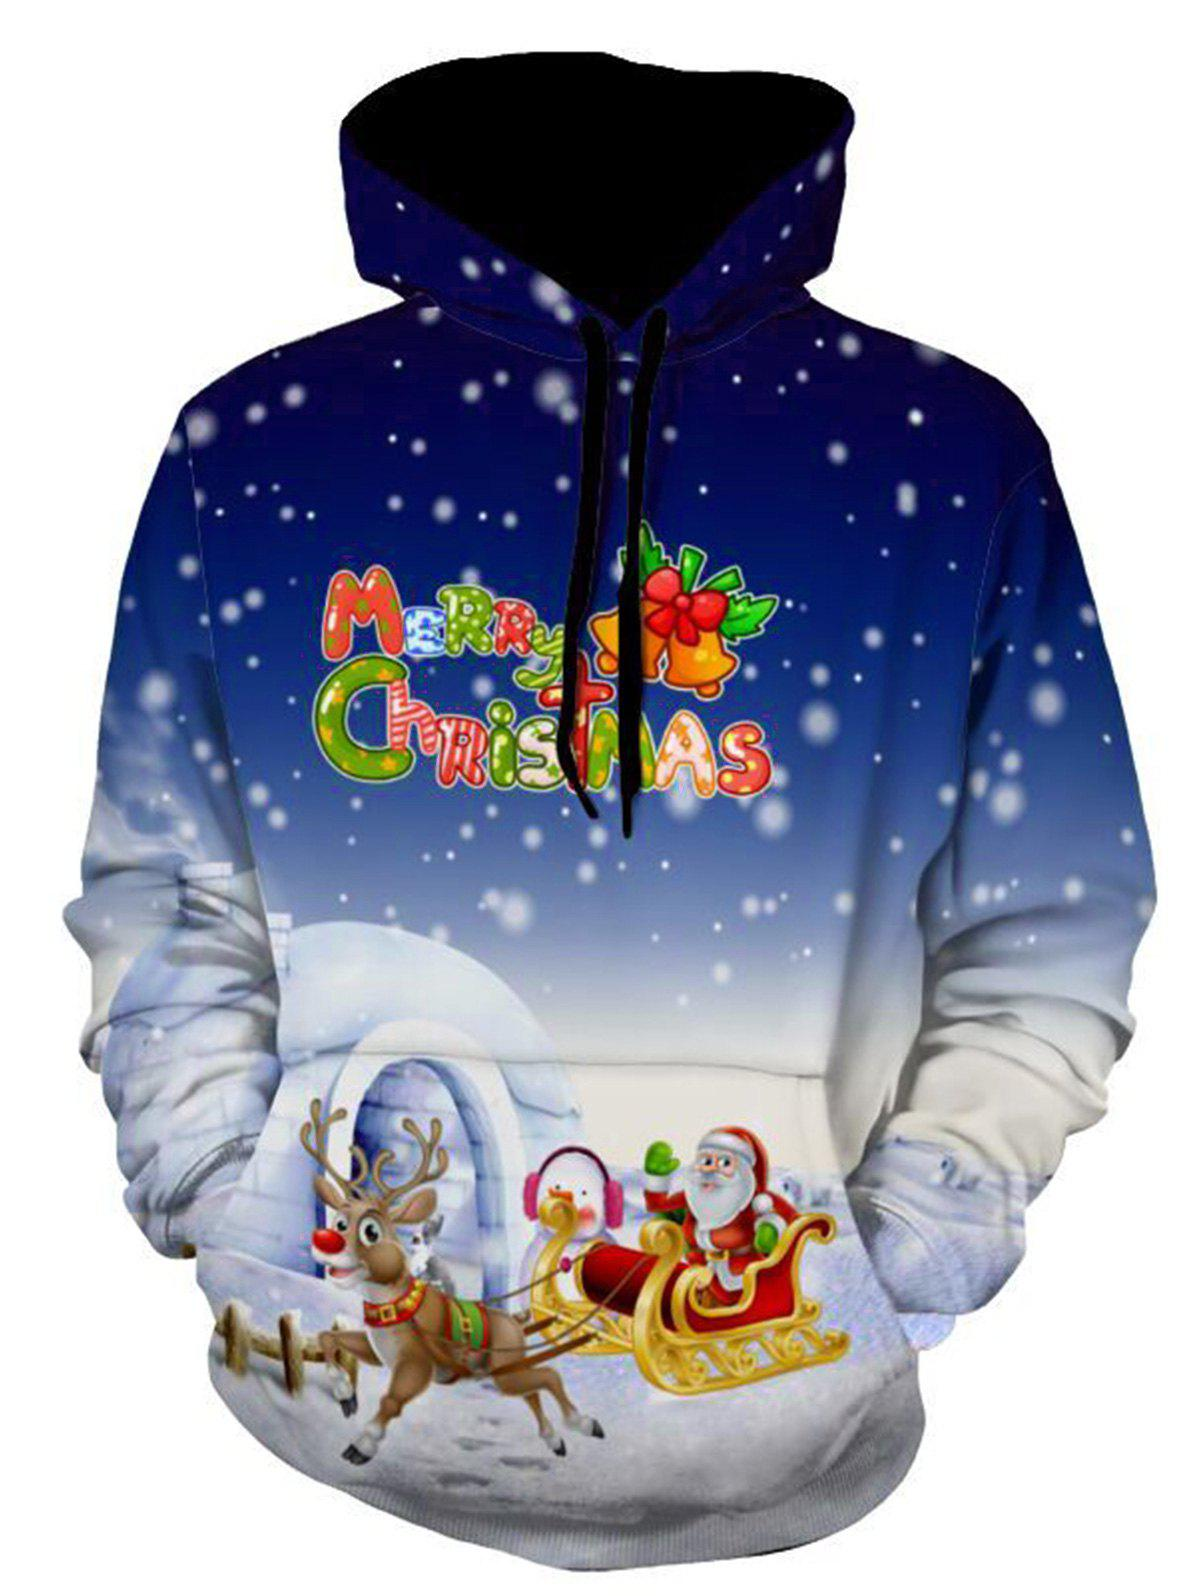 Jingle Bells Santa Clause Christmas Reindeer Pullover HoodieMEN<br><br>Size: L; Color: BLUE; Material: Polyester,Spandex; Clothes Type: Hoodie; Shirt Length: Regular; Sleeve Length: Full; Style: Fashion; Patterns: Cartoon,Letter,Print; Thickness: Regular; Occasion: Casual,Daily Use,Going Out; Weight: 0.5600kg; Package Contents: 1 x Hoodie;